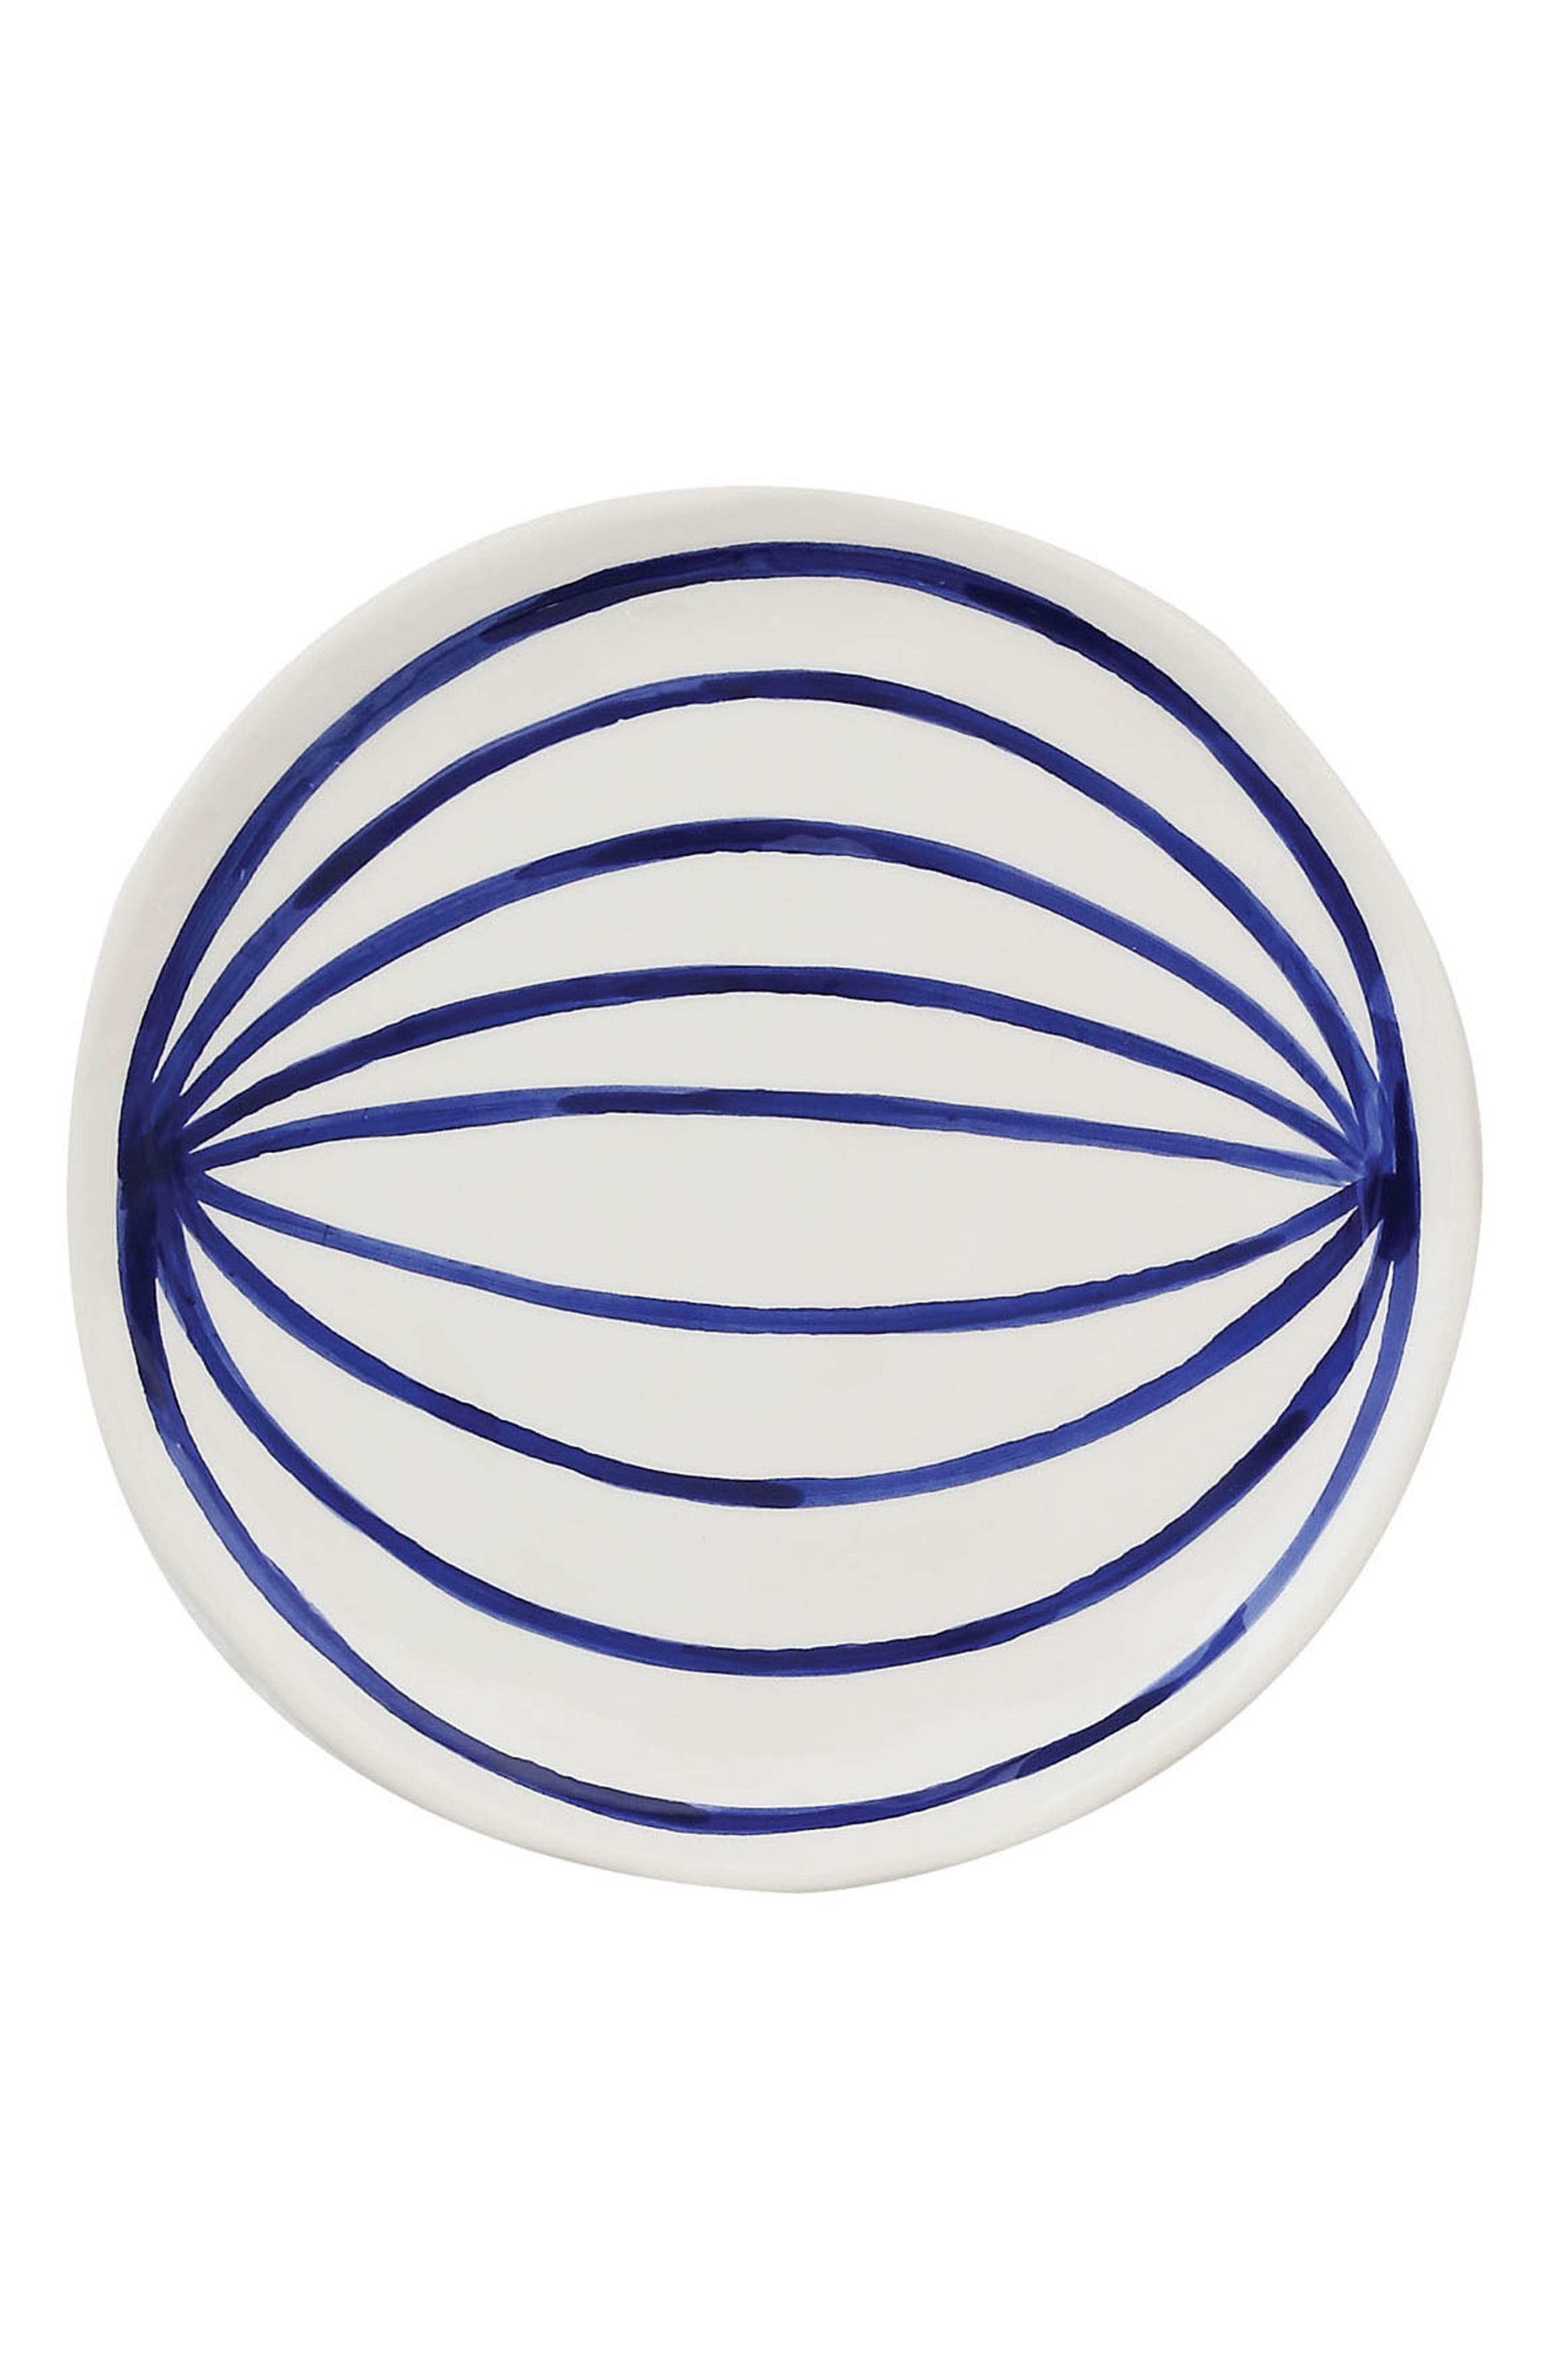 Hand Painted Ceramic Plate,                             Main thumbnail 1, color,                             Blue